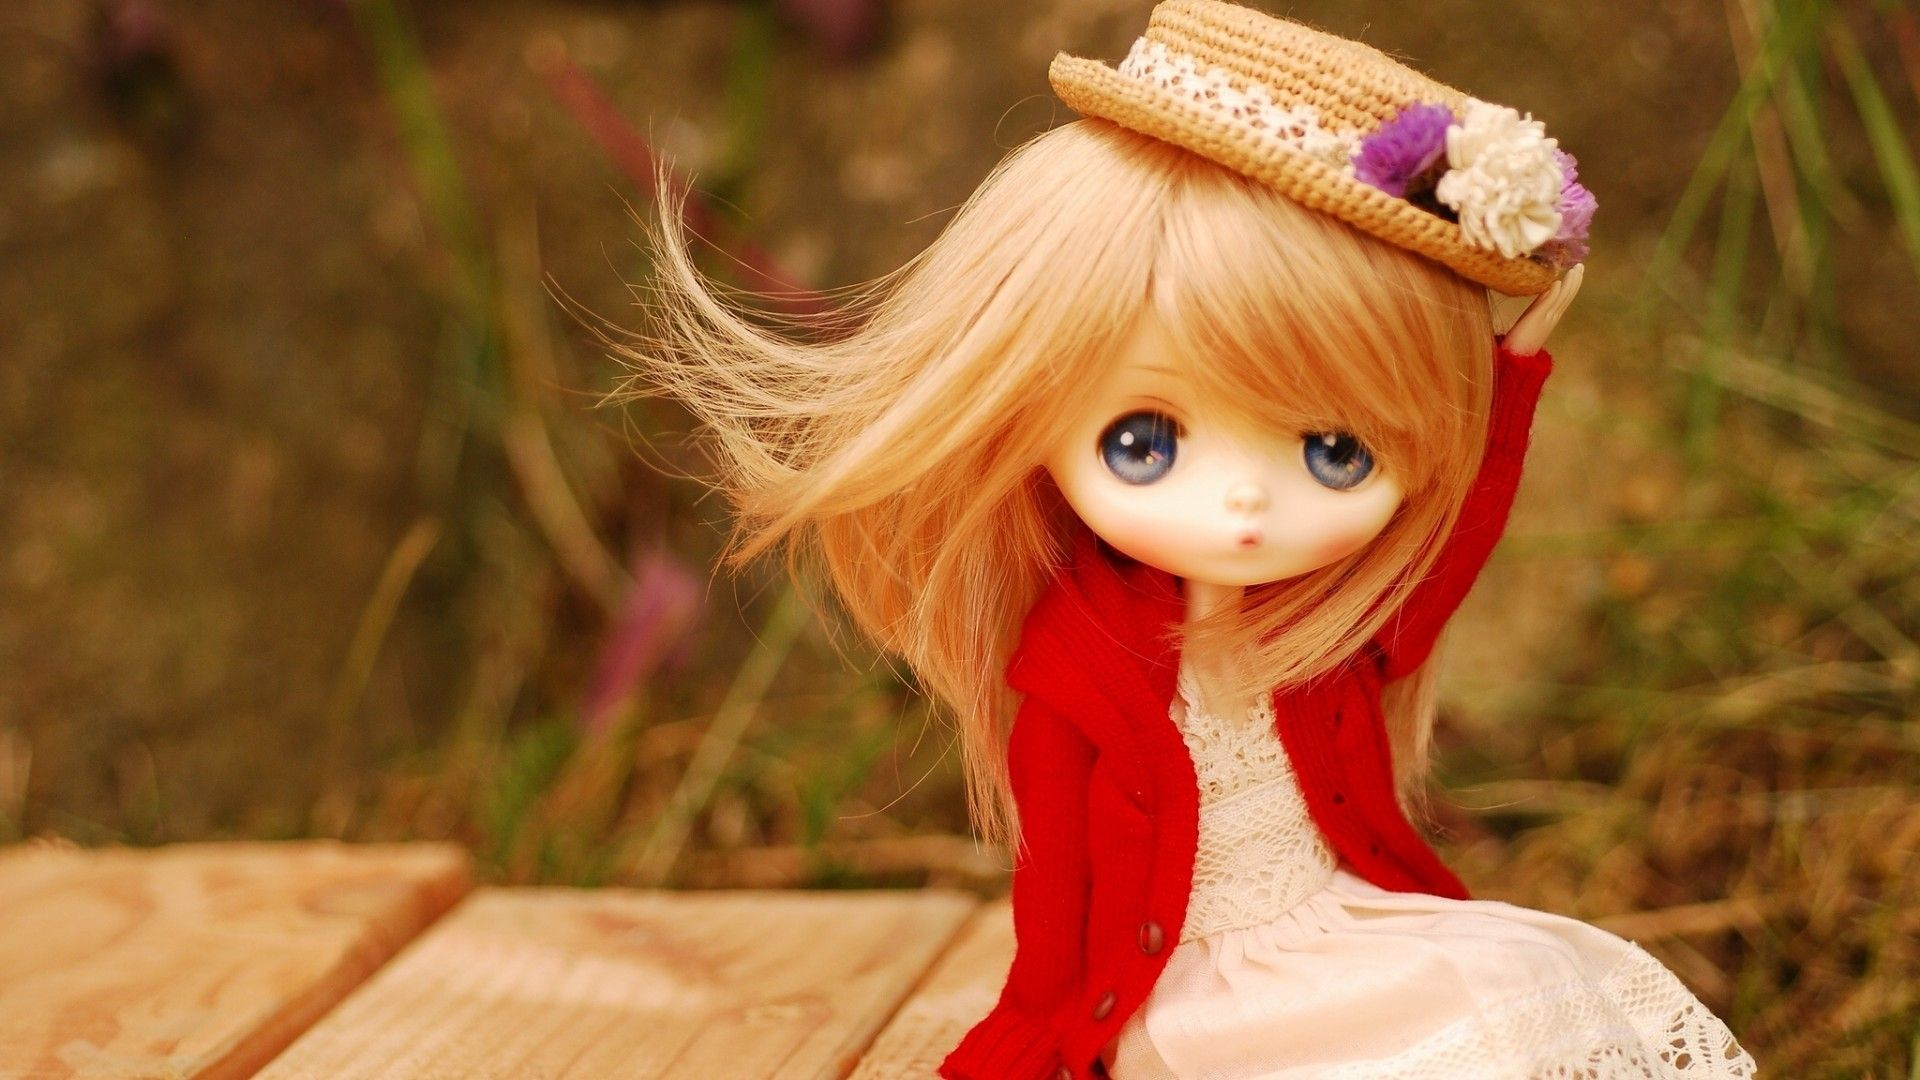 Hd wallpaper doll - Baby Doll Hd Wallpapers